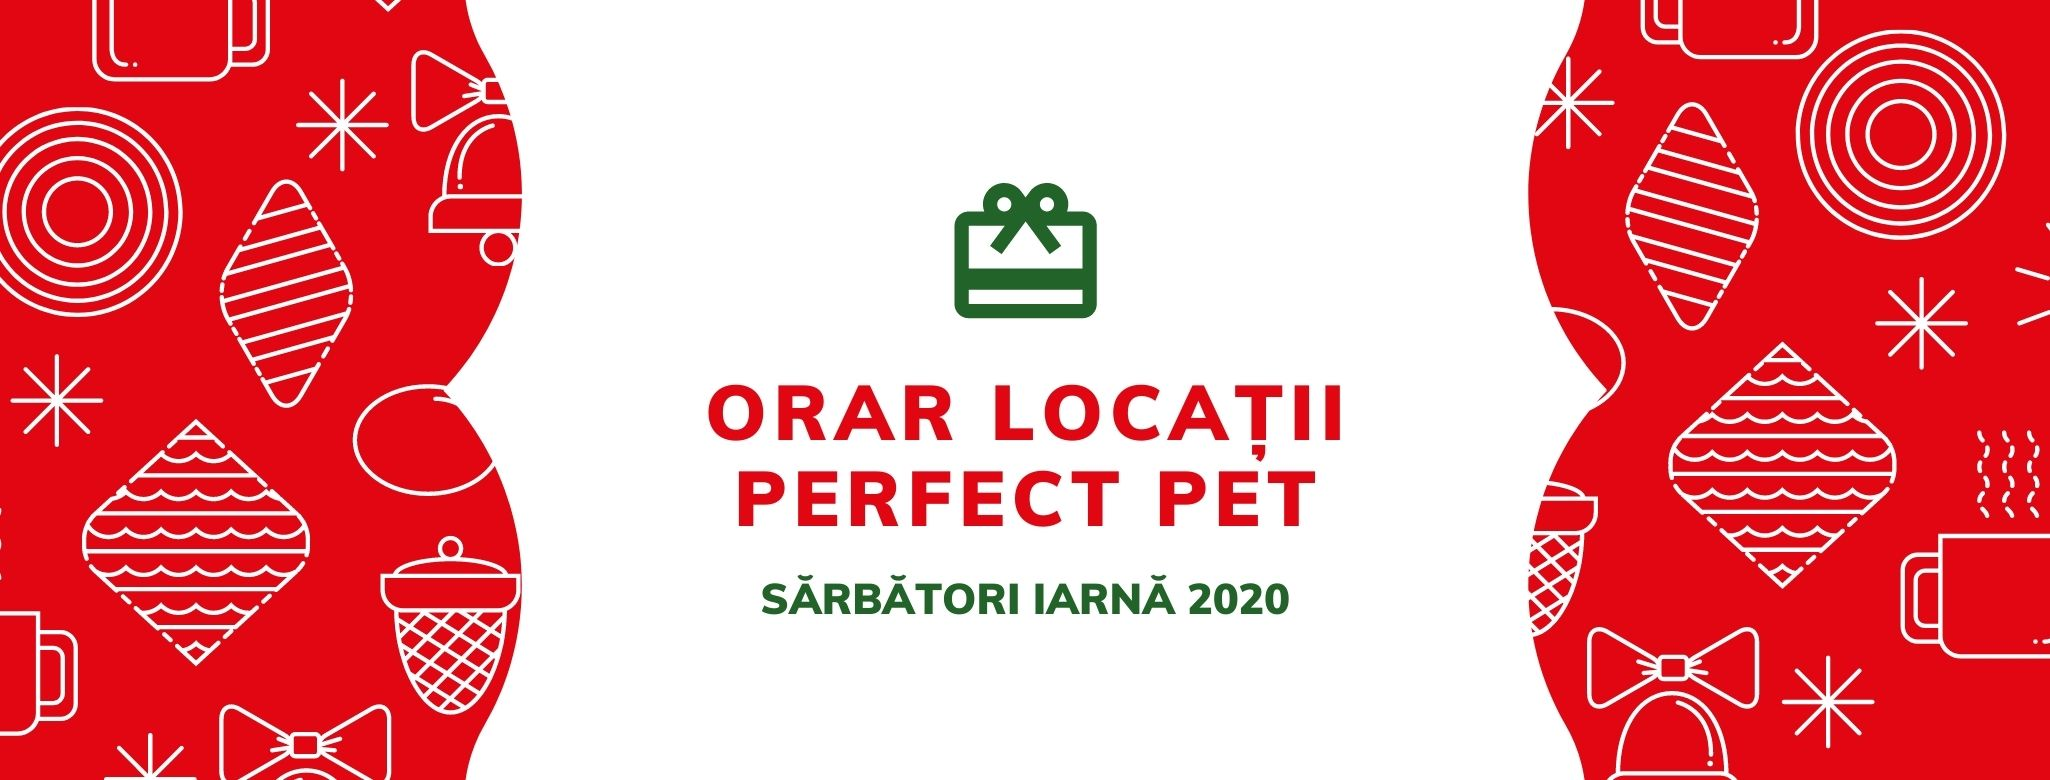 Program Perfect Pet Crăciun Revelion 2020